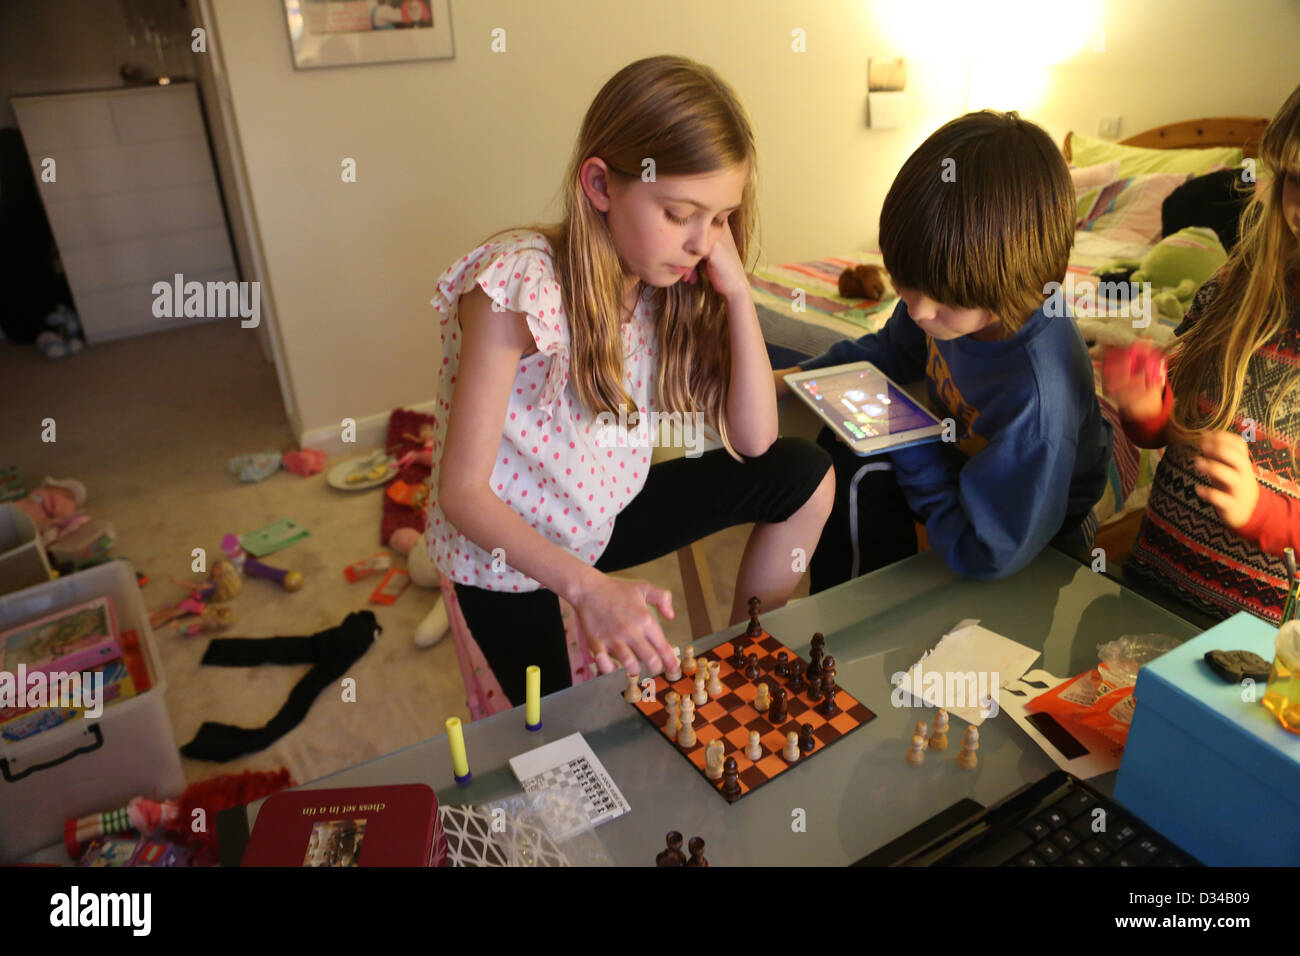 Children Playing Chess In Their Bedroom Boy With IPad Mini England   Stock  Image